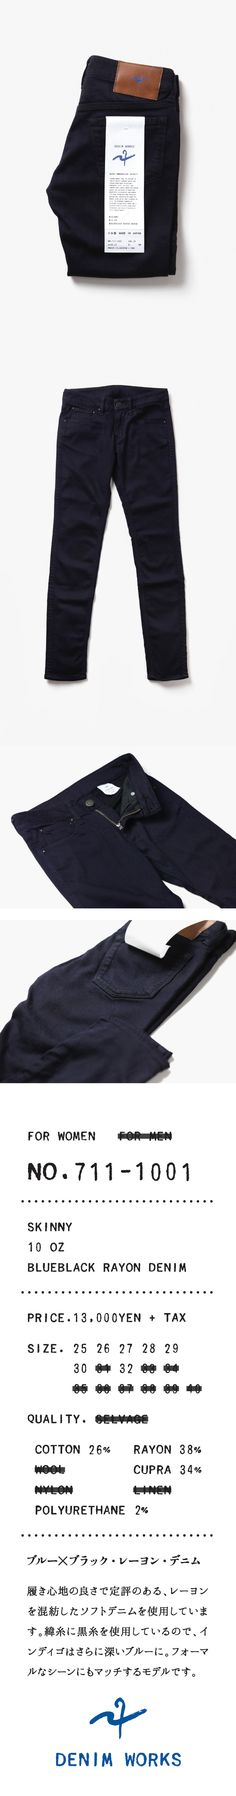 DENIM WORKS®|Original products for WOMEN, The first model 2014 A/W - NO.711-1001| It is made from the rayon-blended Soft Denim, which is famous for its comfort to wear. Black weft threads deepen the indigo blue further. It is a model that matches formal scenes as well.